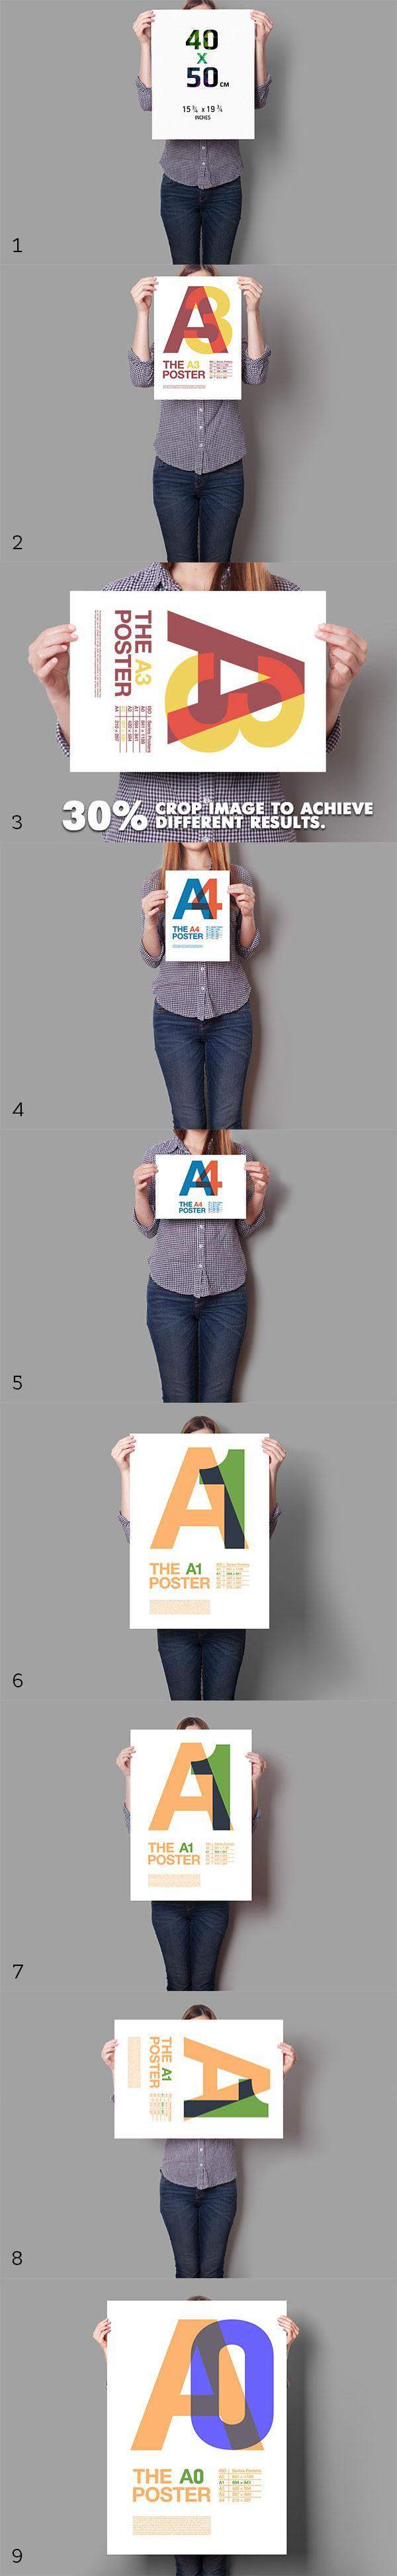 Poster Mockup 10 Different Images